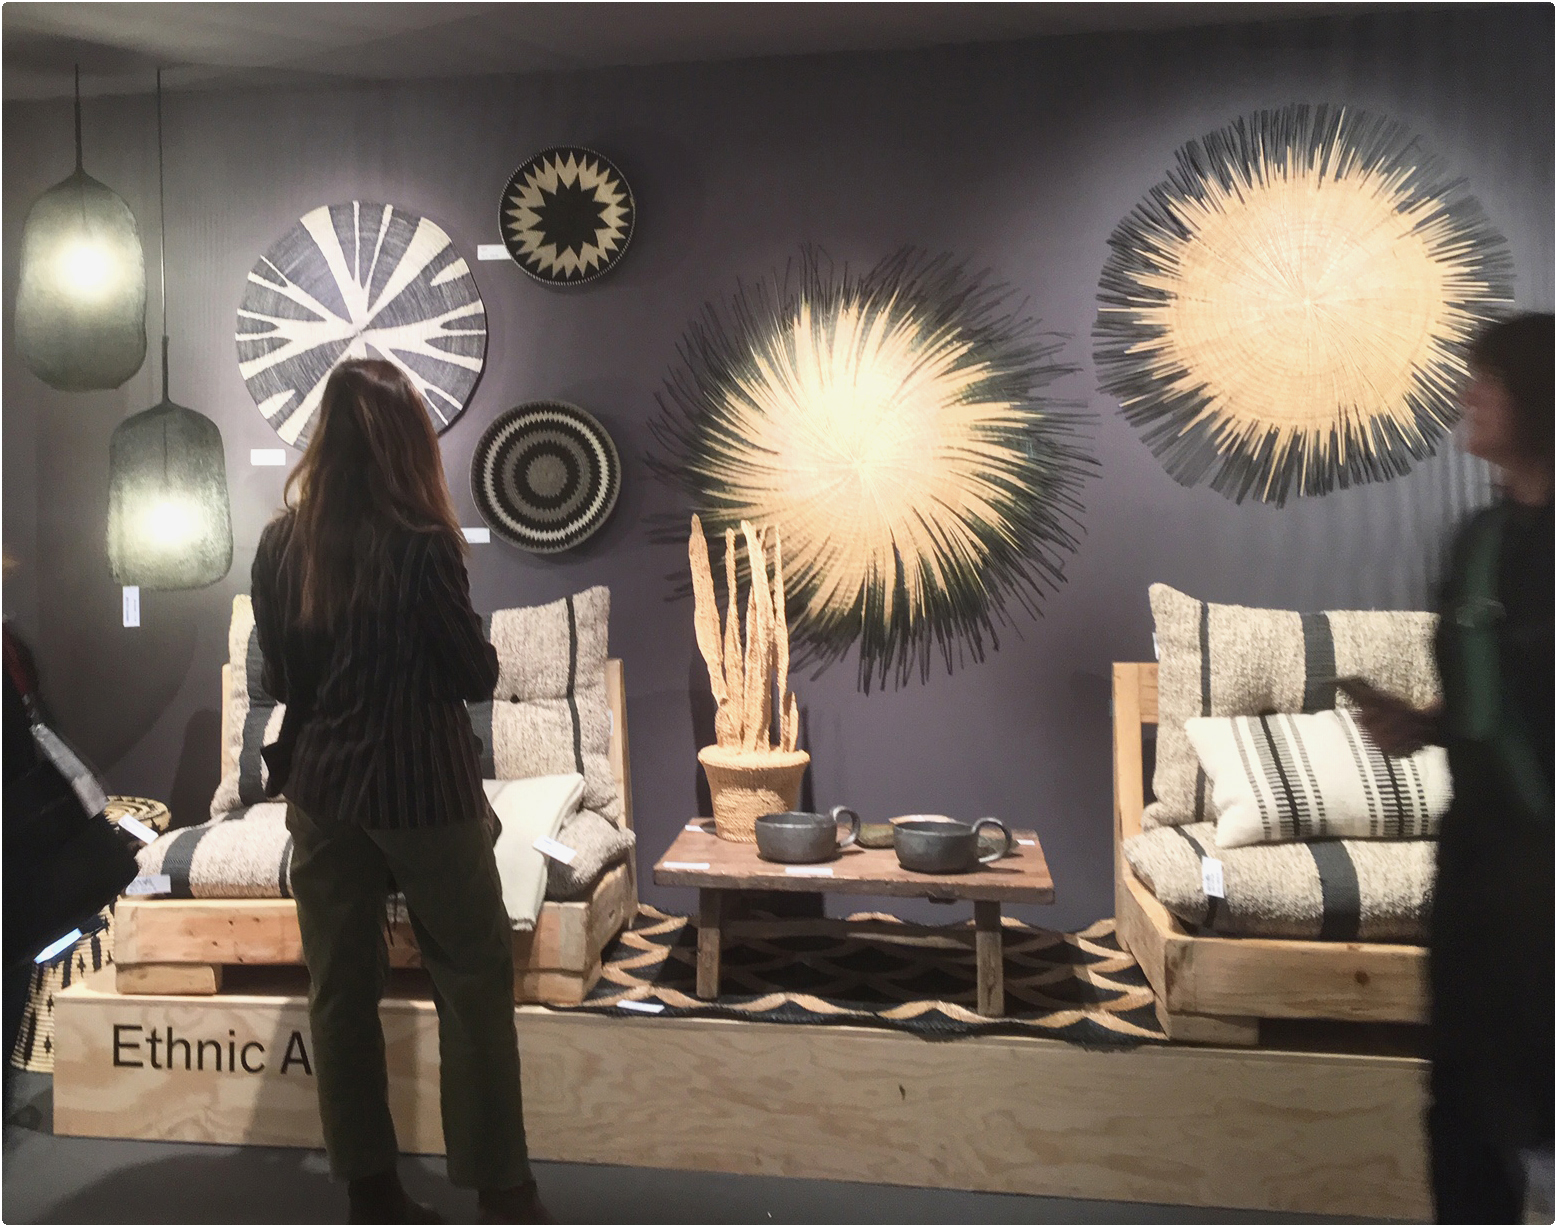 Elizabeth Leriche exhibition during Maison&Objet show, with a our sisal baskets and our stone bowls